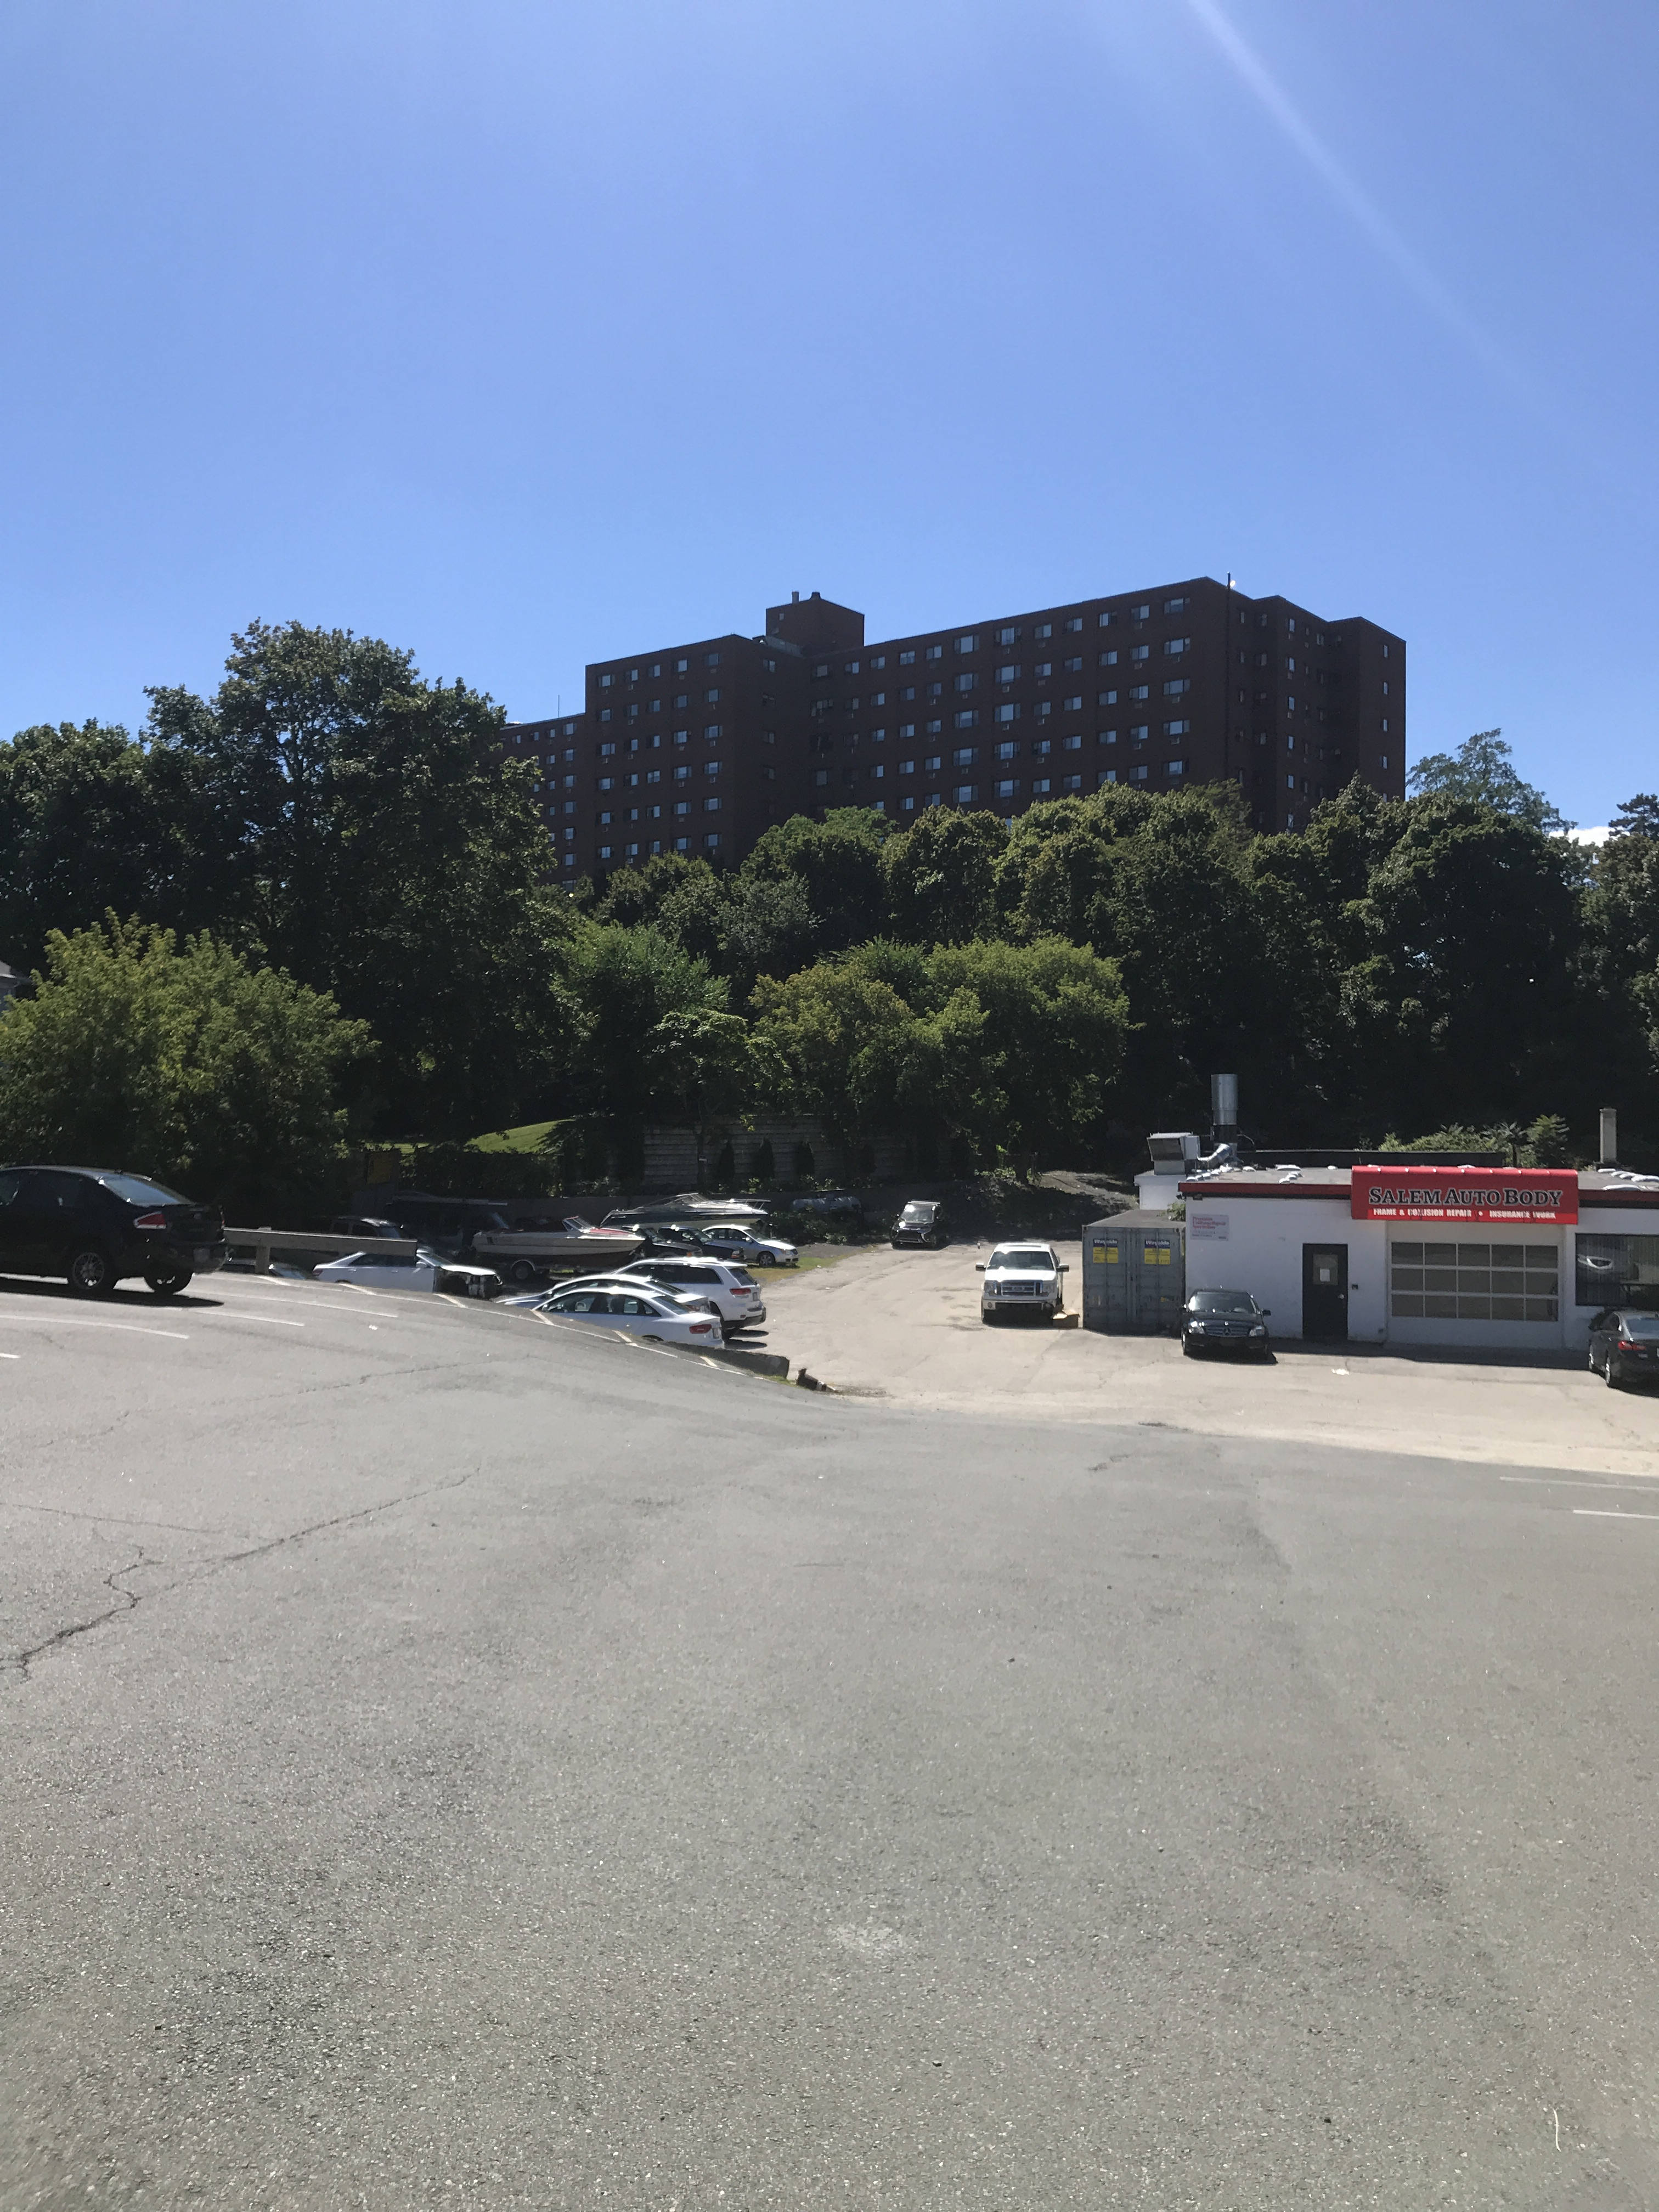 A view across a street. In the middle ground is an auto-body shop surrounded by a sizeable lot with a few cars parked in it. Behind the lot is a wooded area, and behind that, six stories of a long dark brick building rise over the trees.